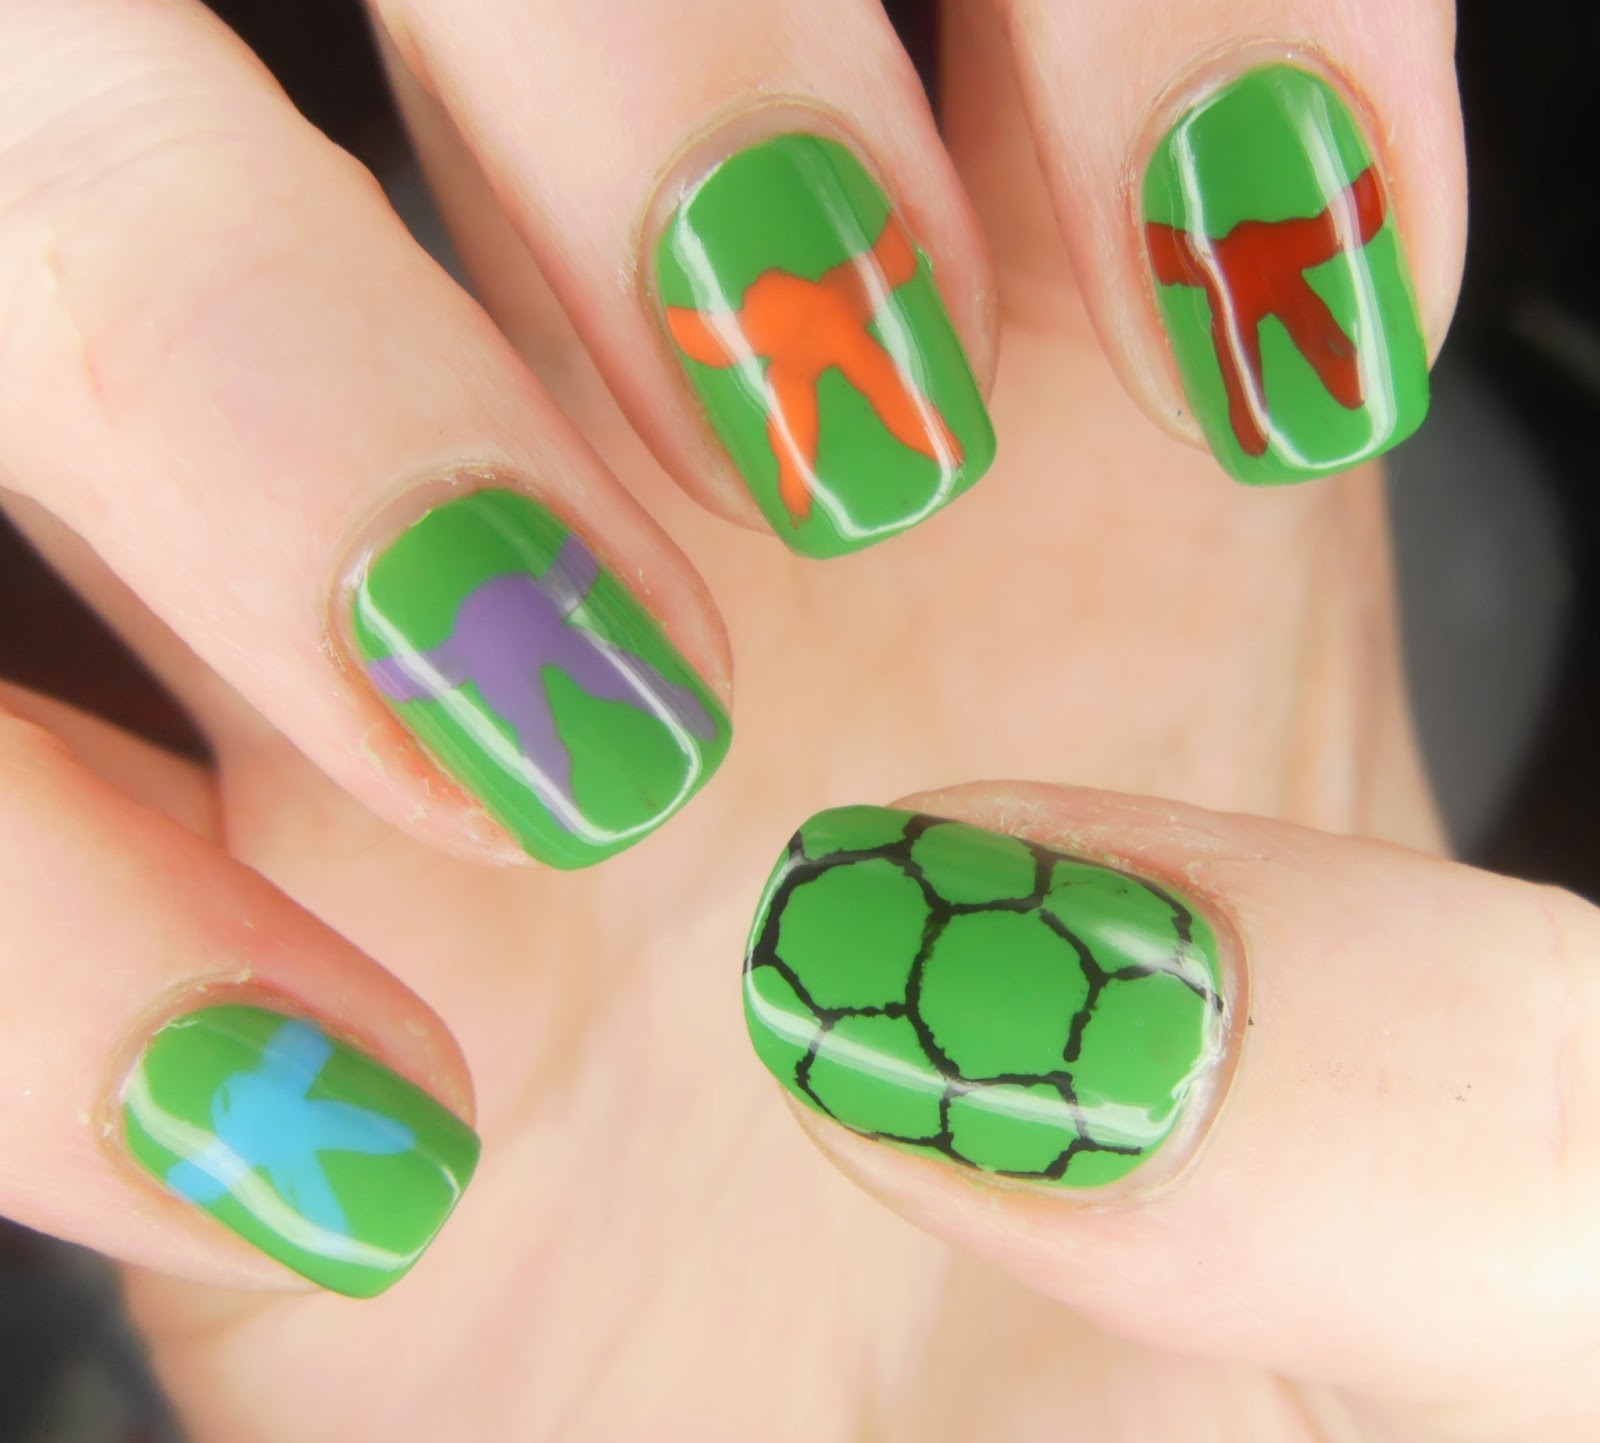 Specialgirl Nails She Who Does Nail Art Challenges Reptiles